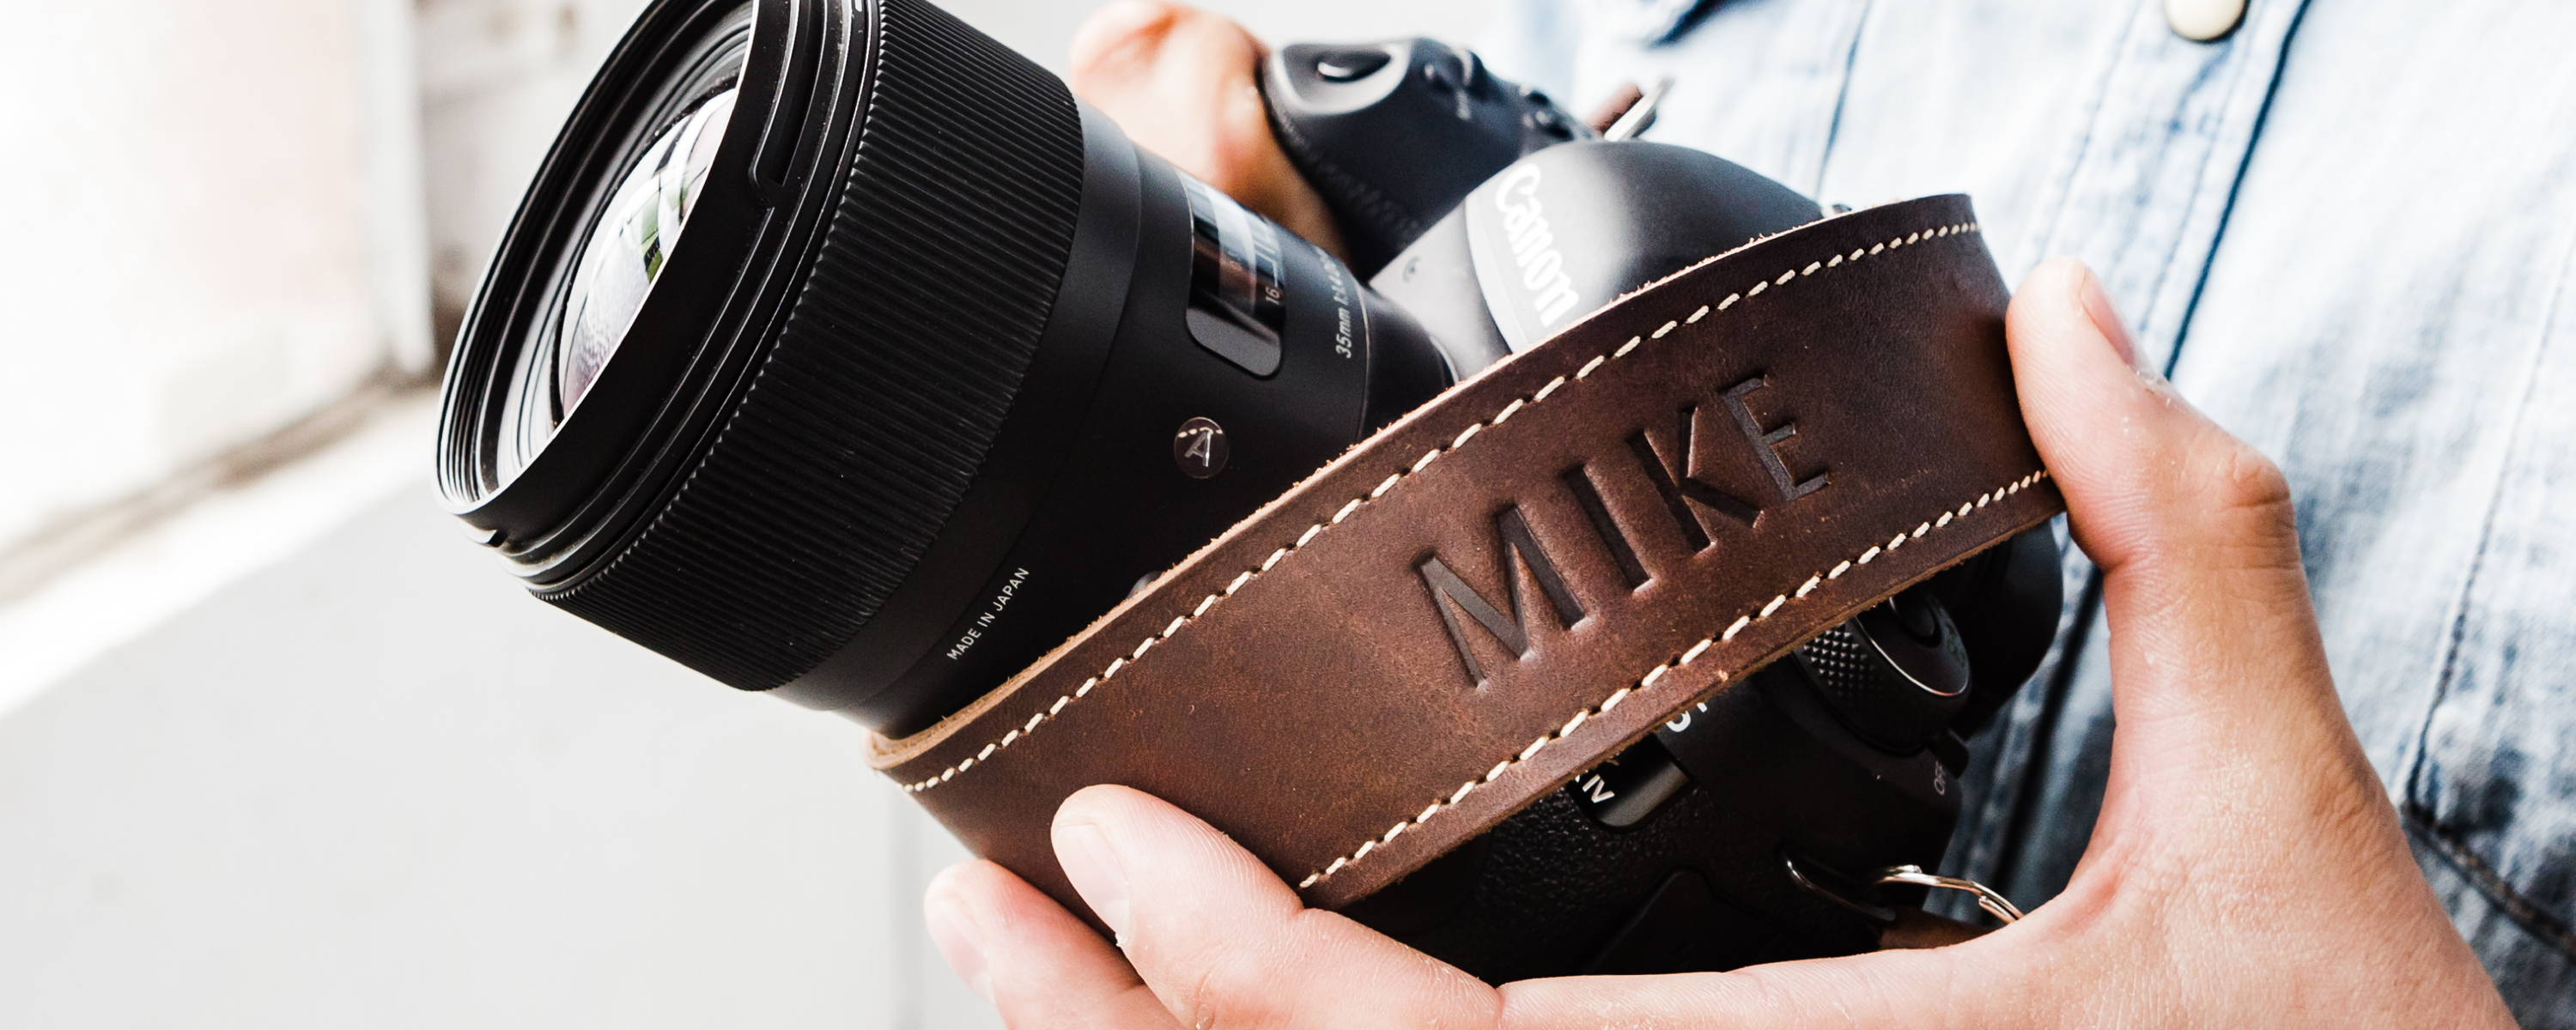 leather camera strap in grizzly brown wrapped around a digital camera